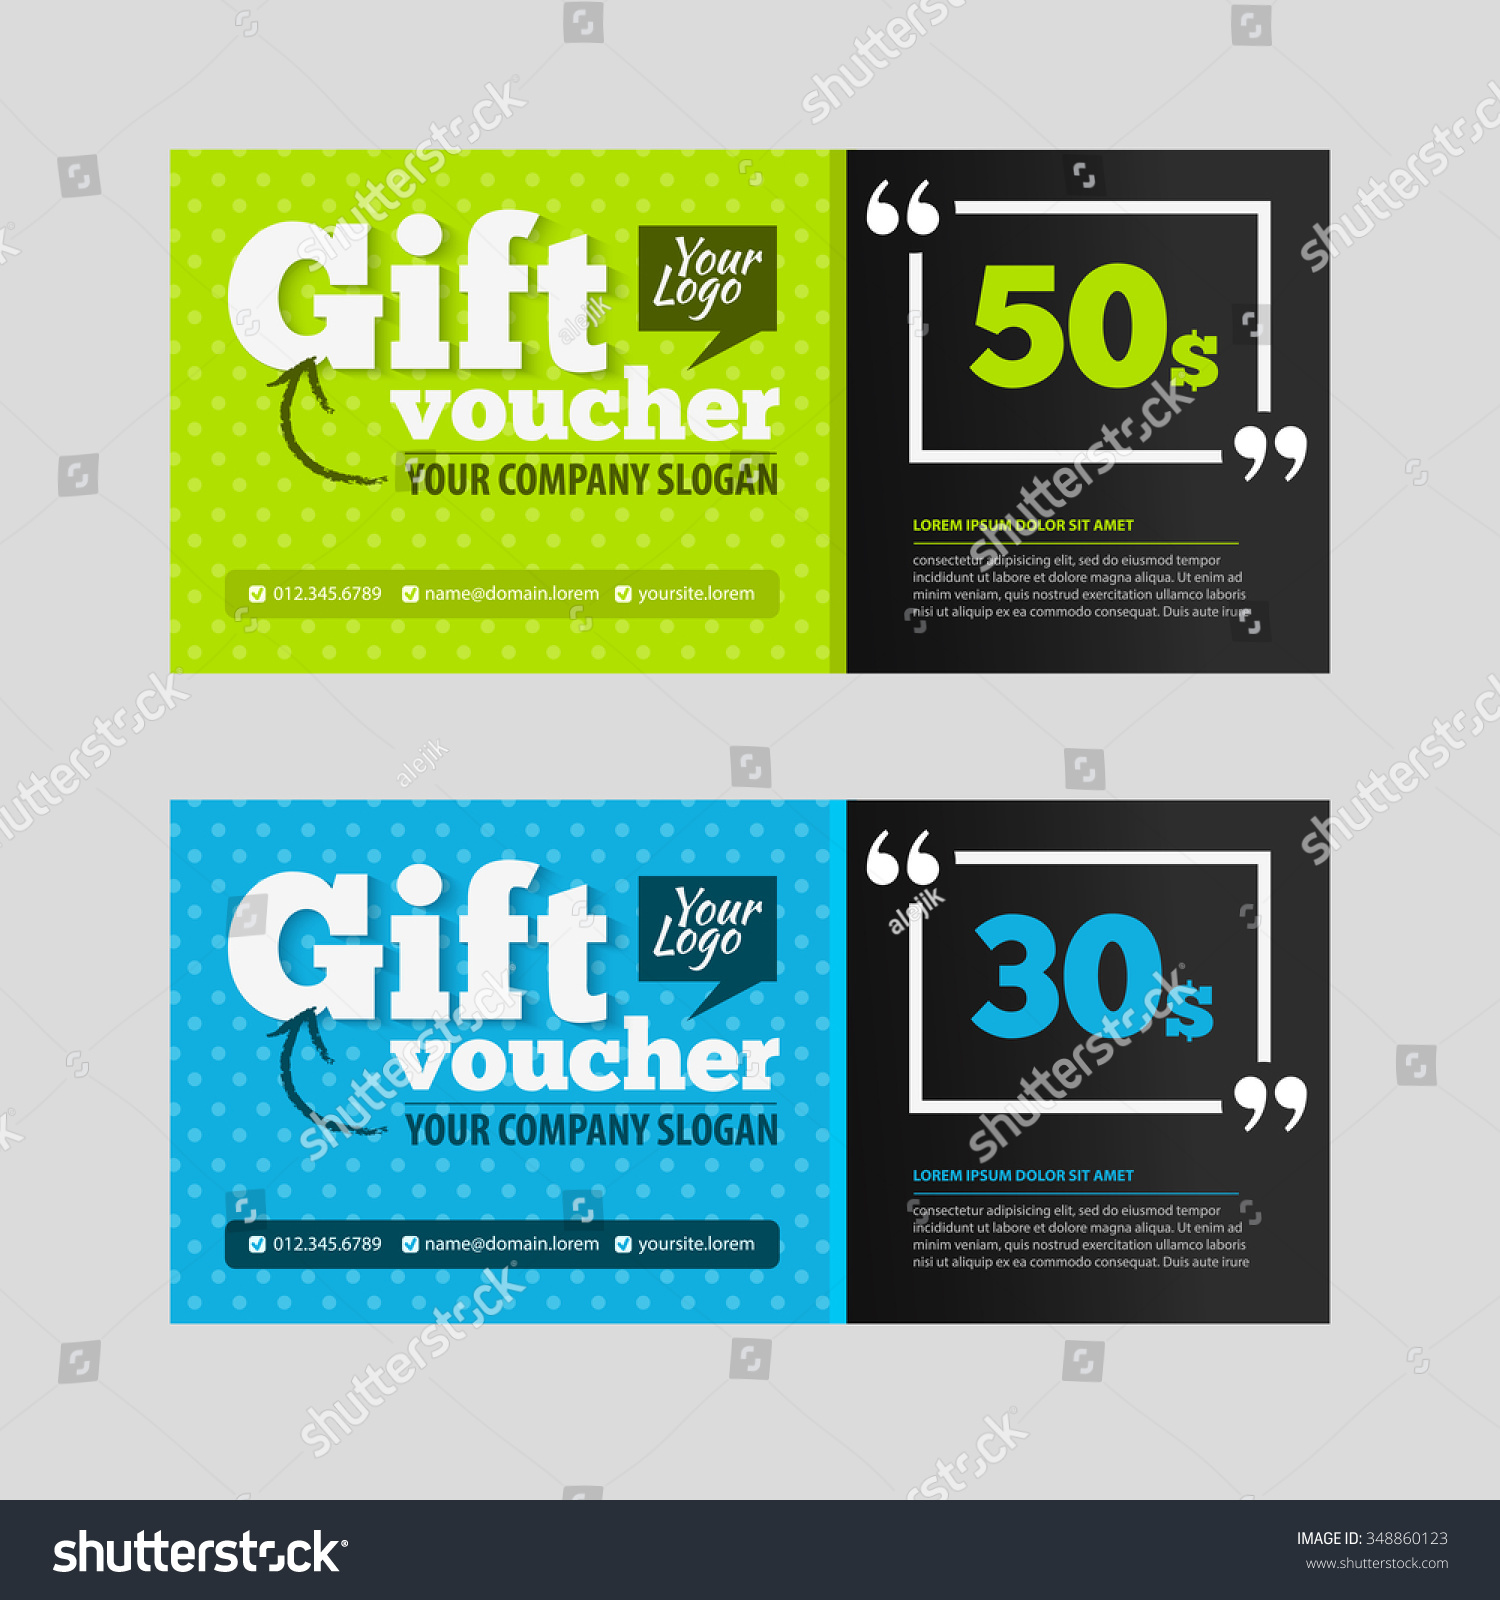 Hotel.info coupons